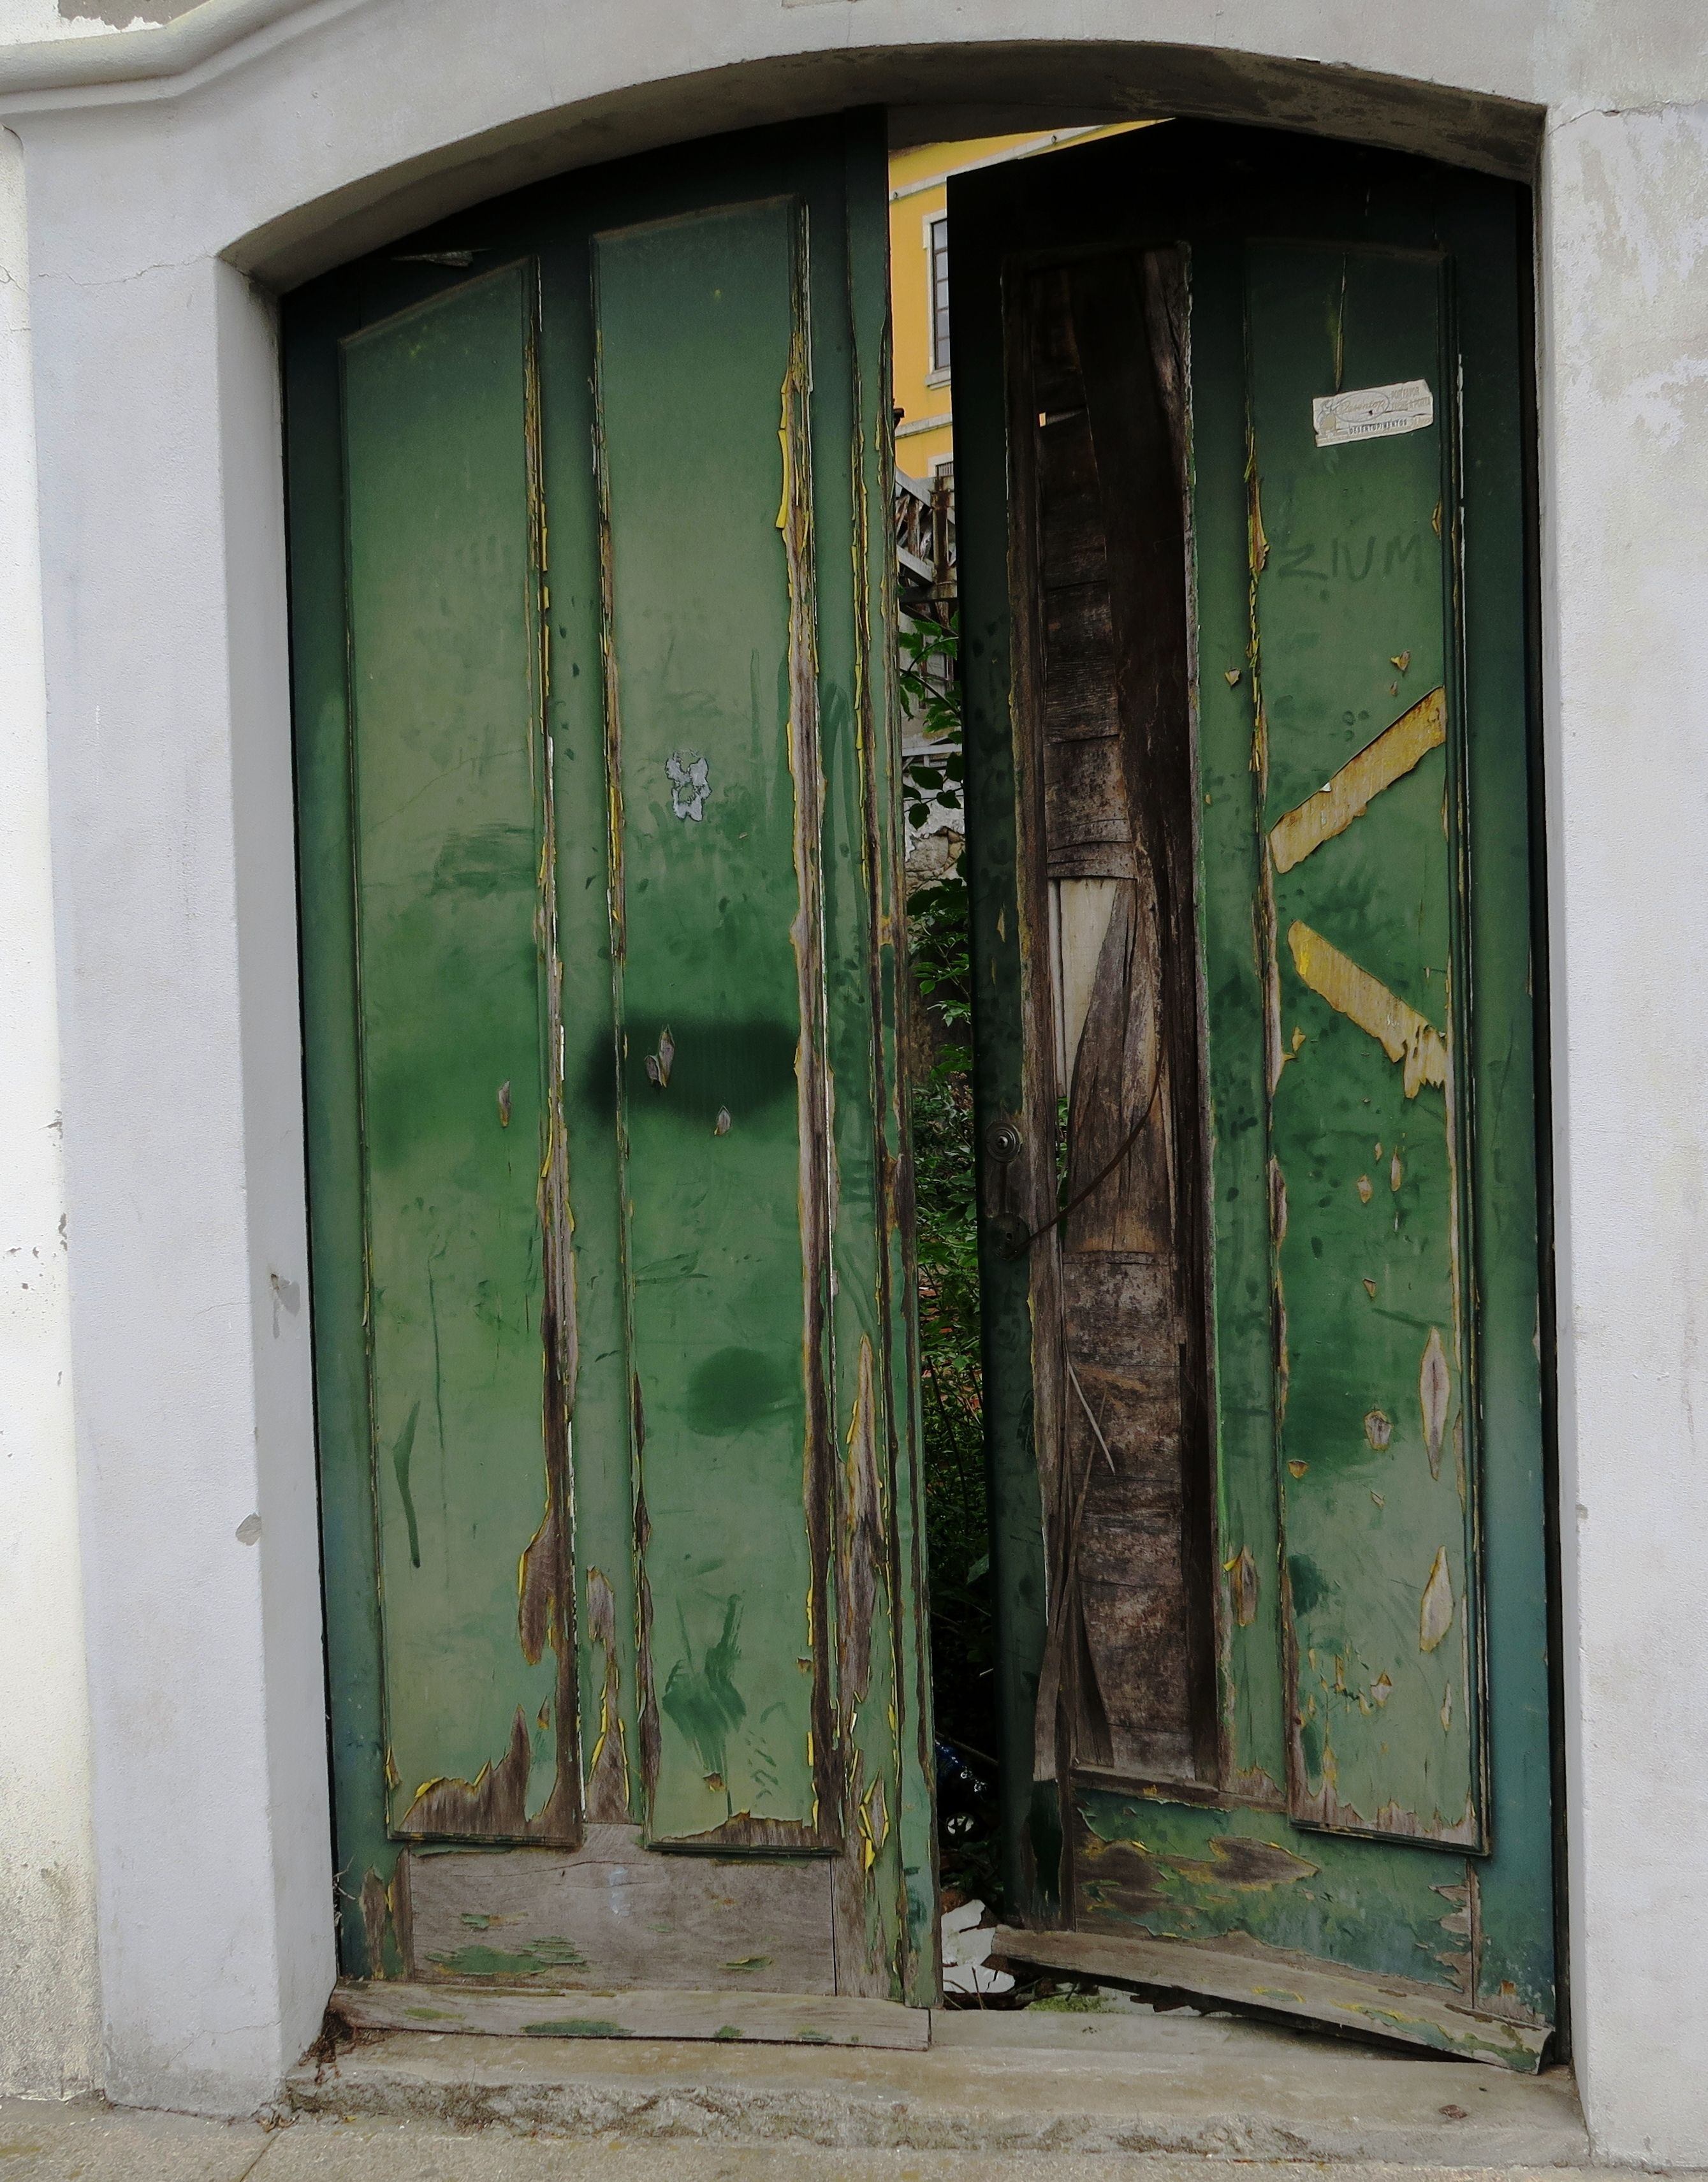 I gently pushed open the weathered Door to see what was hidden (photography M.Baan, Porto Portugal 2015)